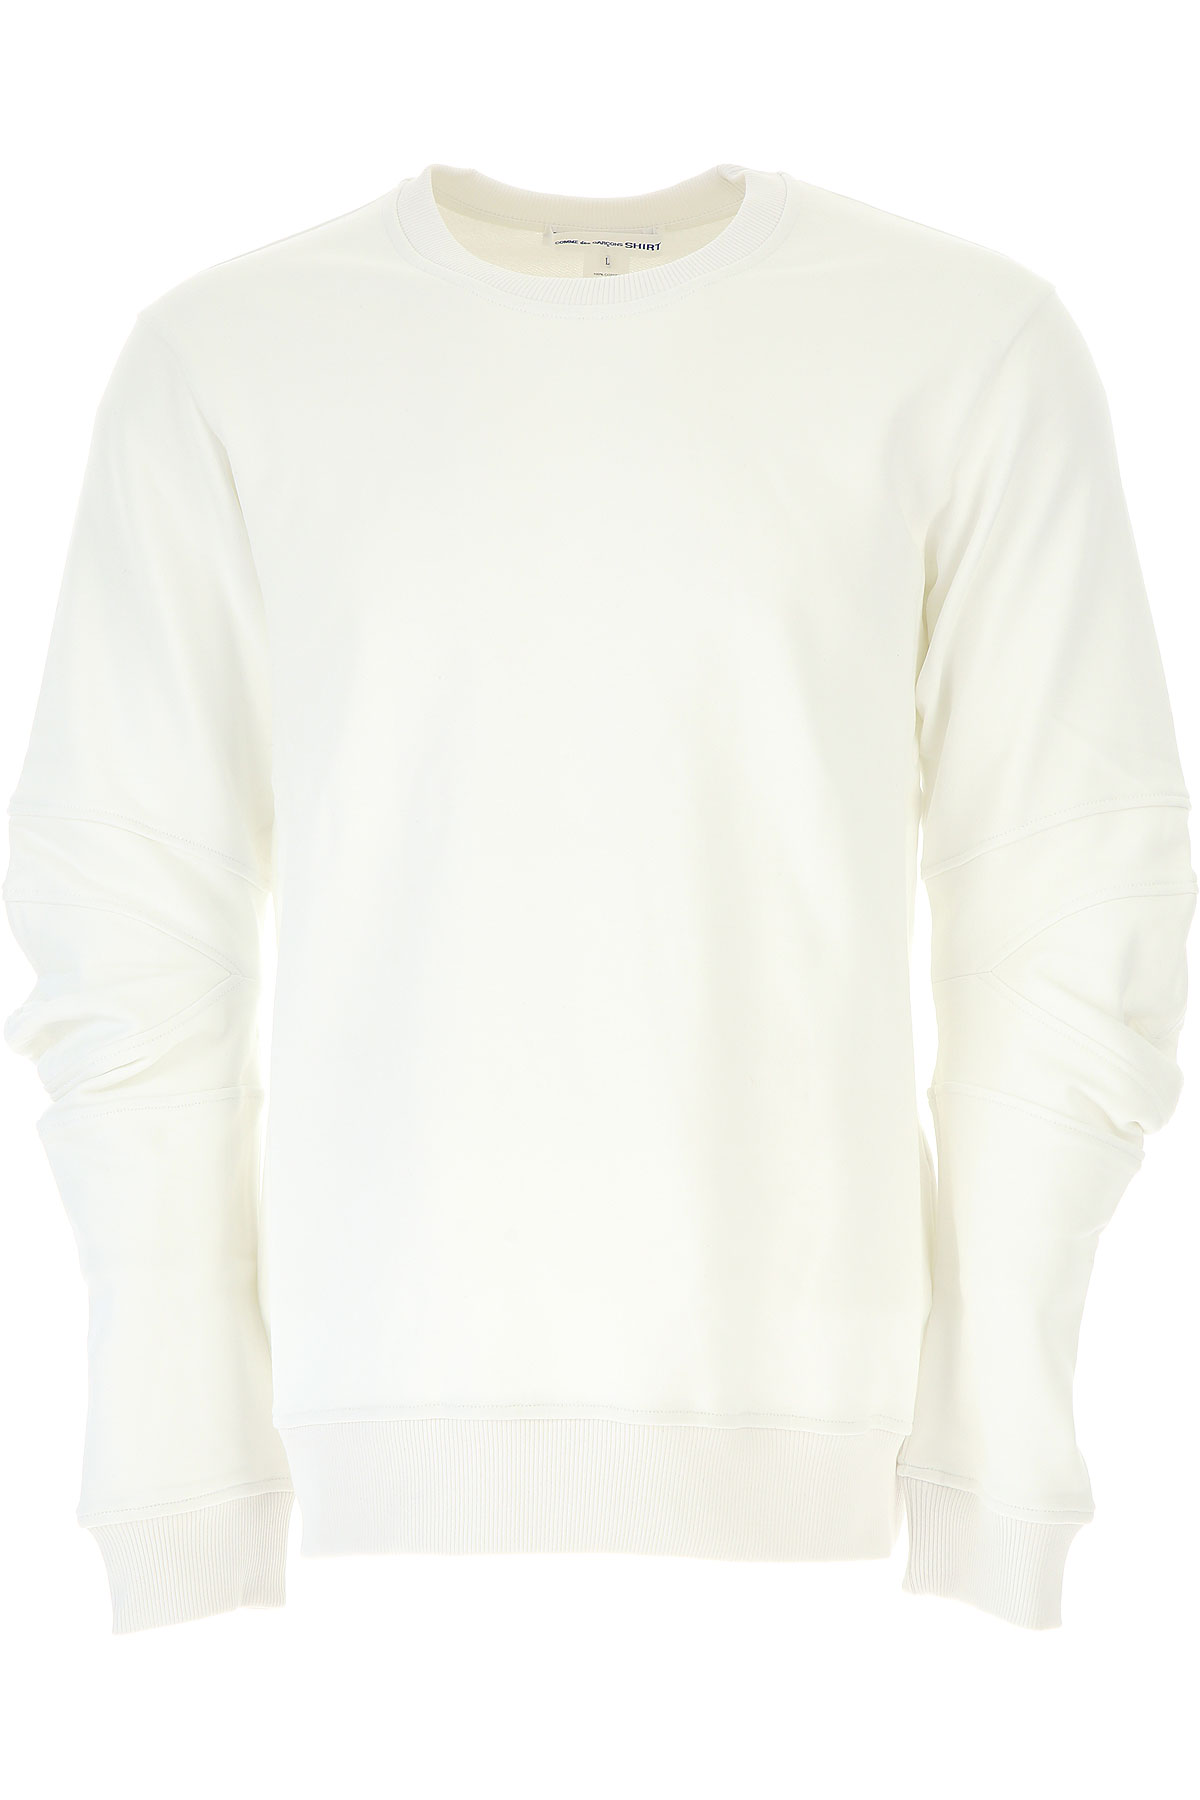 Comme des Garcons Sweatshirt for Men, White, Cotton, 2017, L M S XL USA-454424